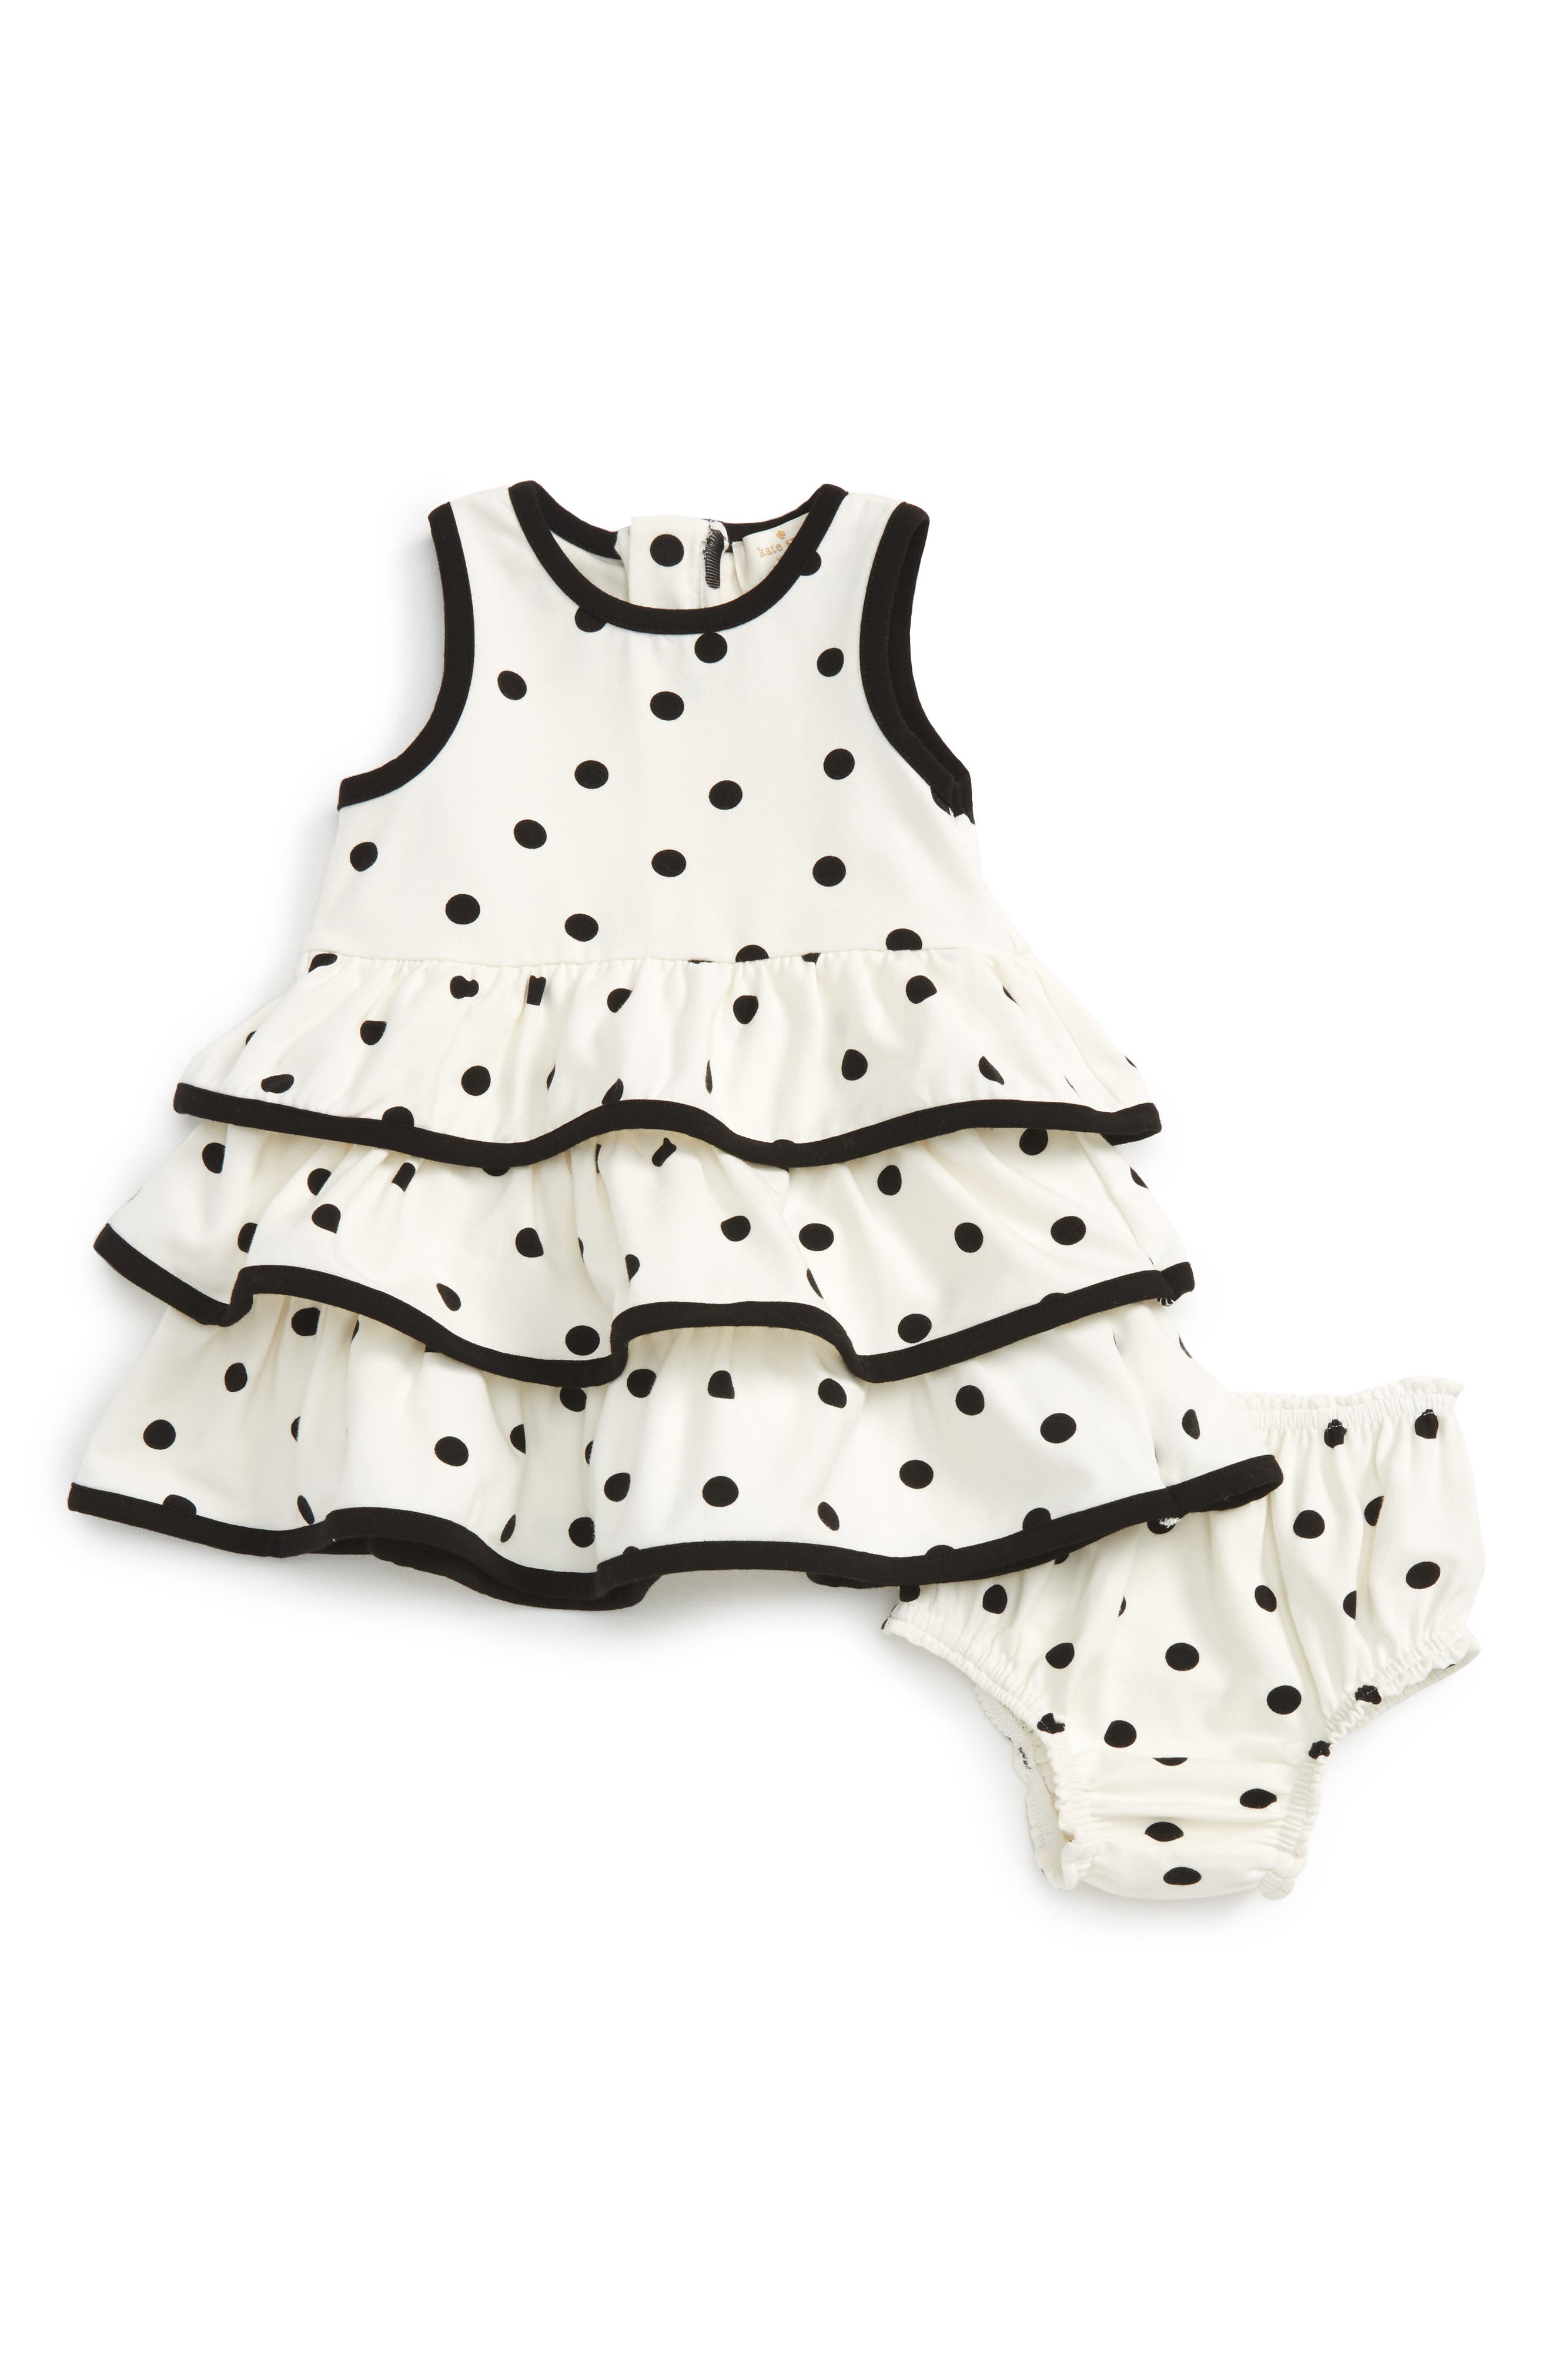 kate spade new york tiered ruffle polka dot dress (Baby Girls)